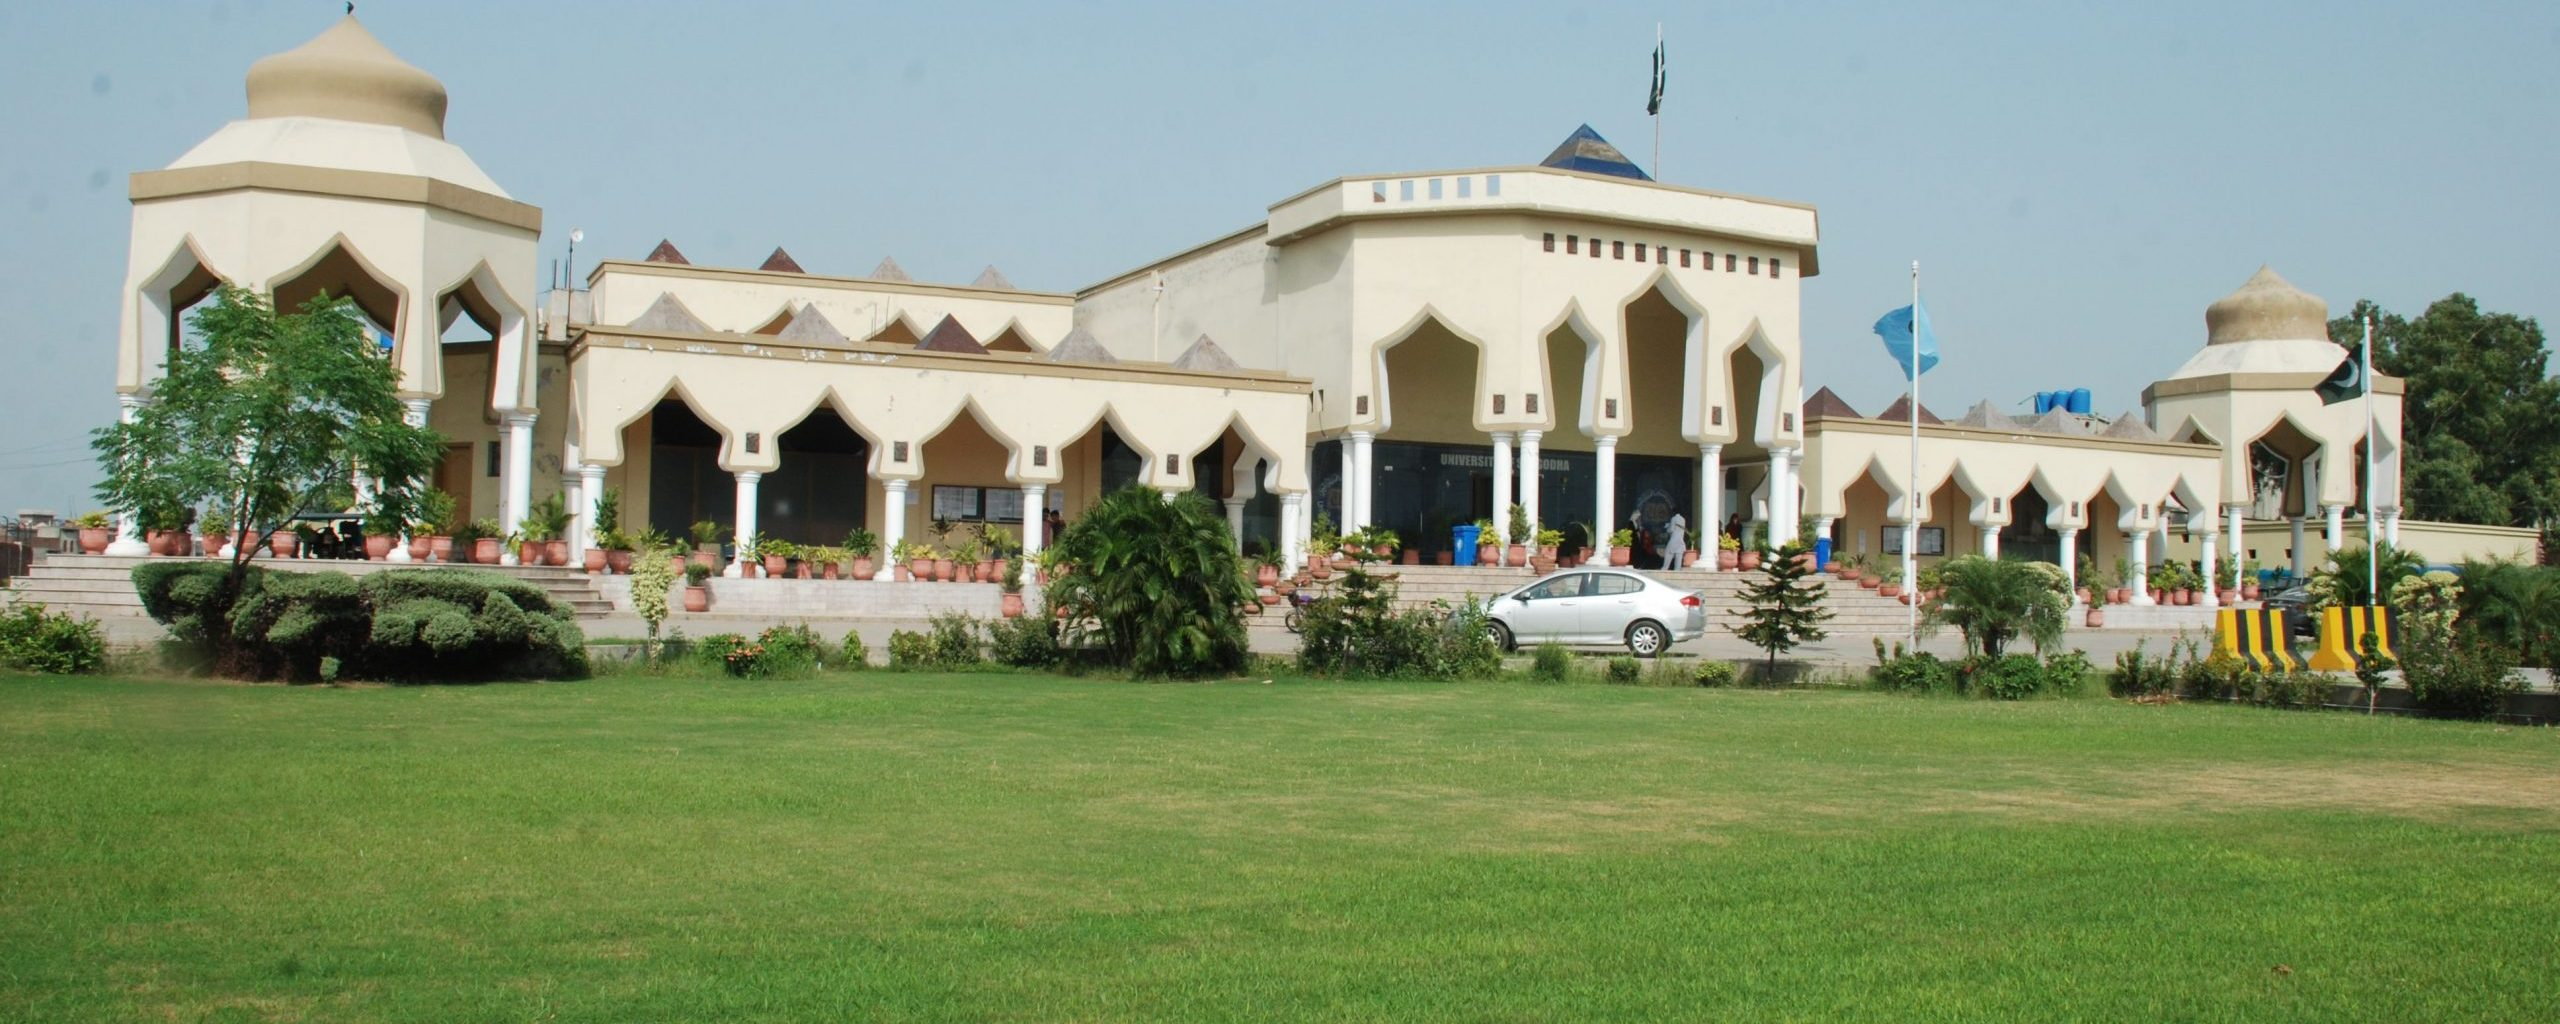 IAS Gujranwala affiliated with GC university Lahore (2)